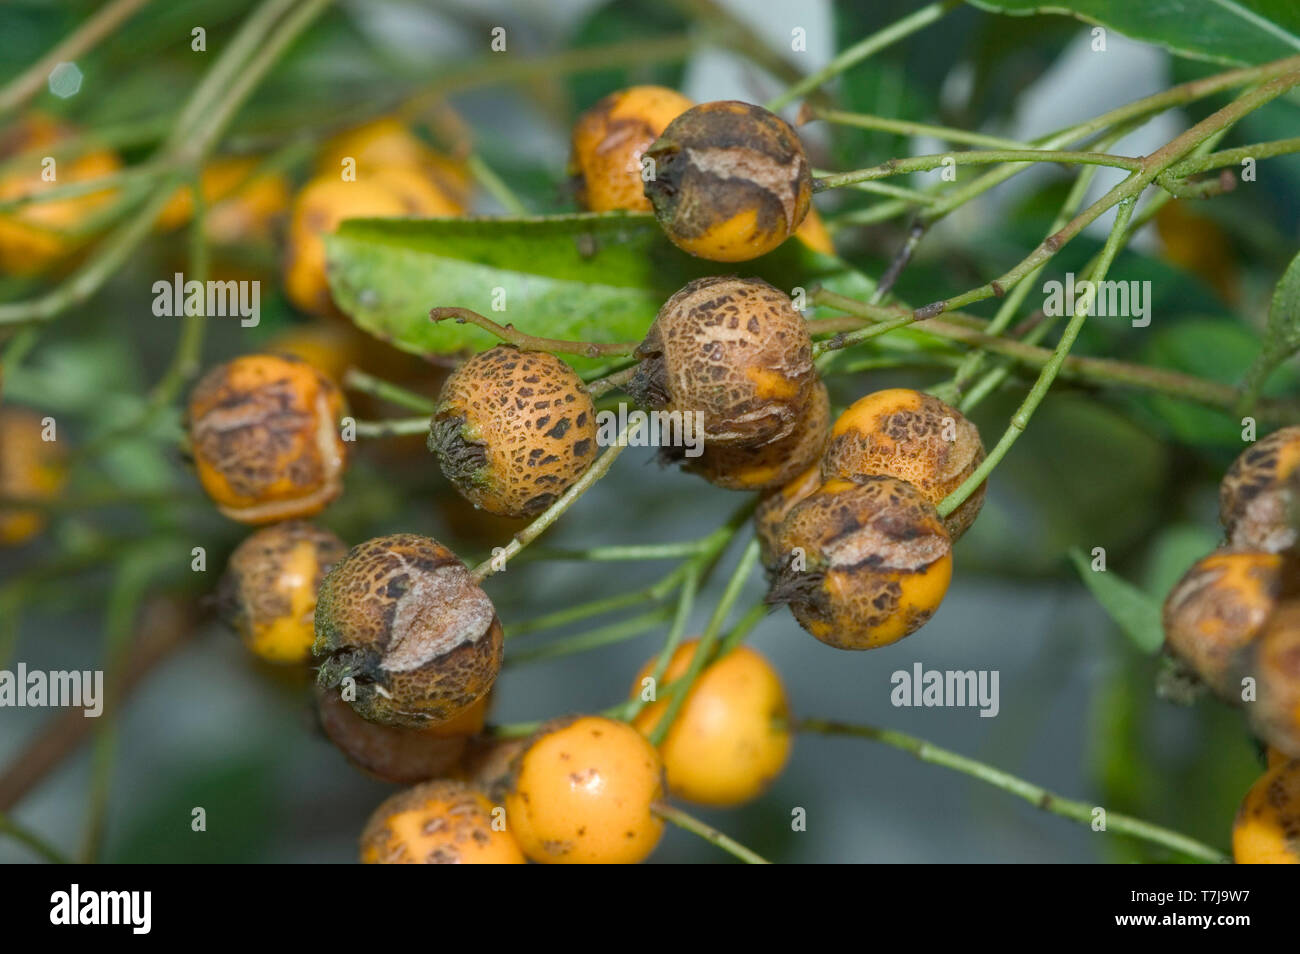 Scab (Venturia inaequalis) disfigurement and spots on berry fruits of an ornamental firethorn (Pyracantha) - Stock Image